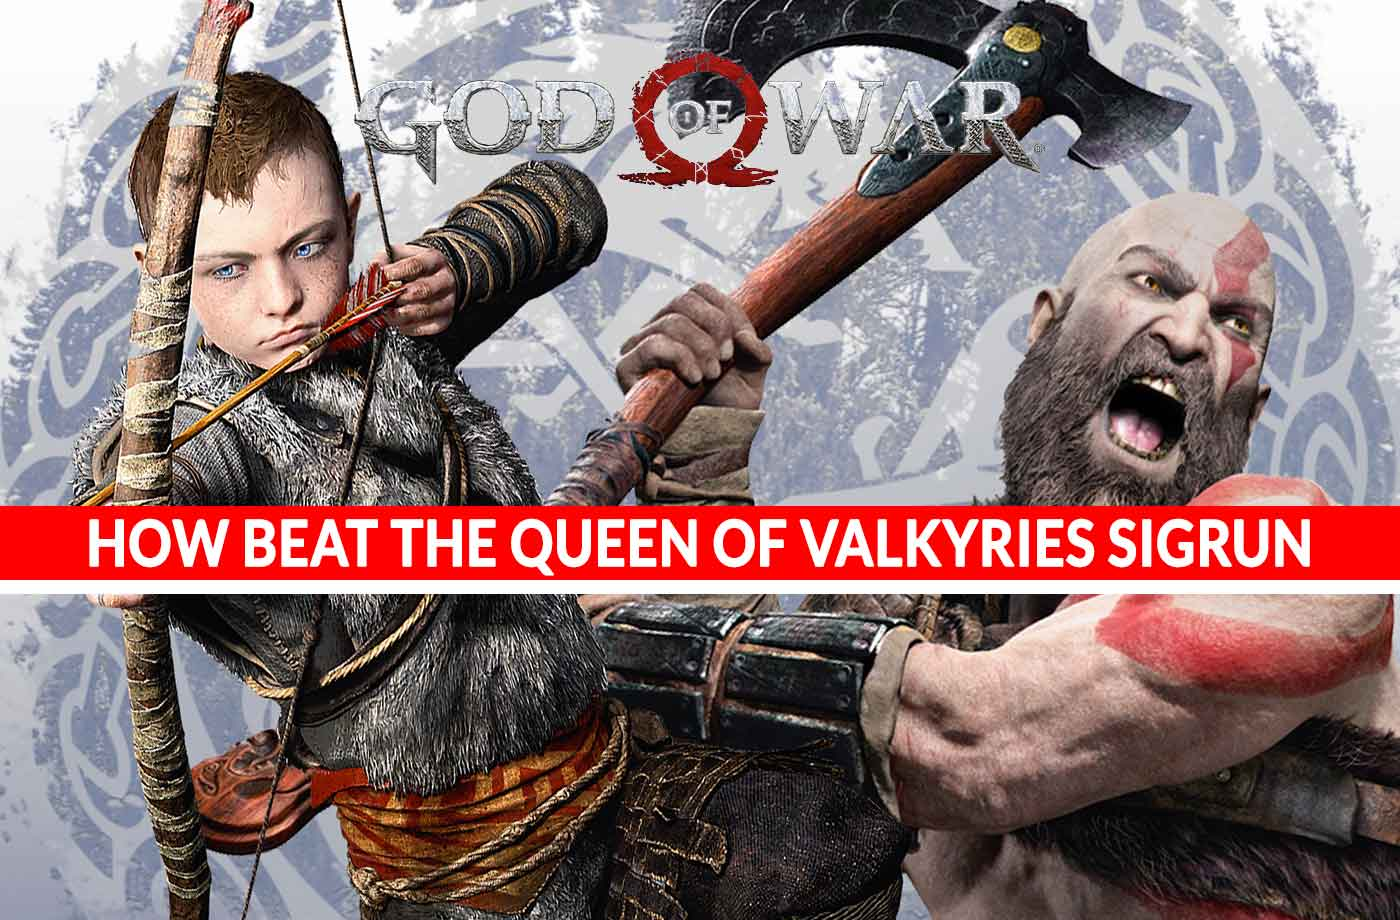 God of War how to successfully beat the Queen of Valkyries